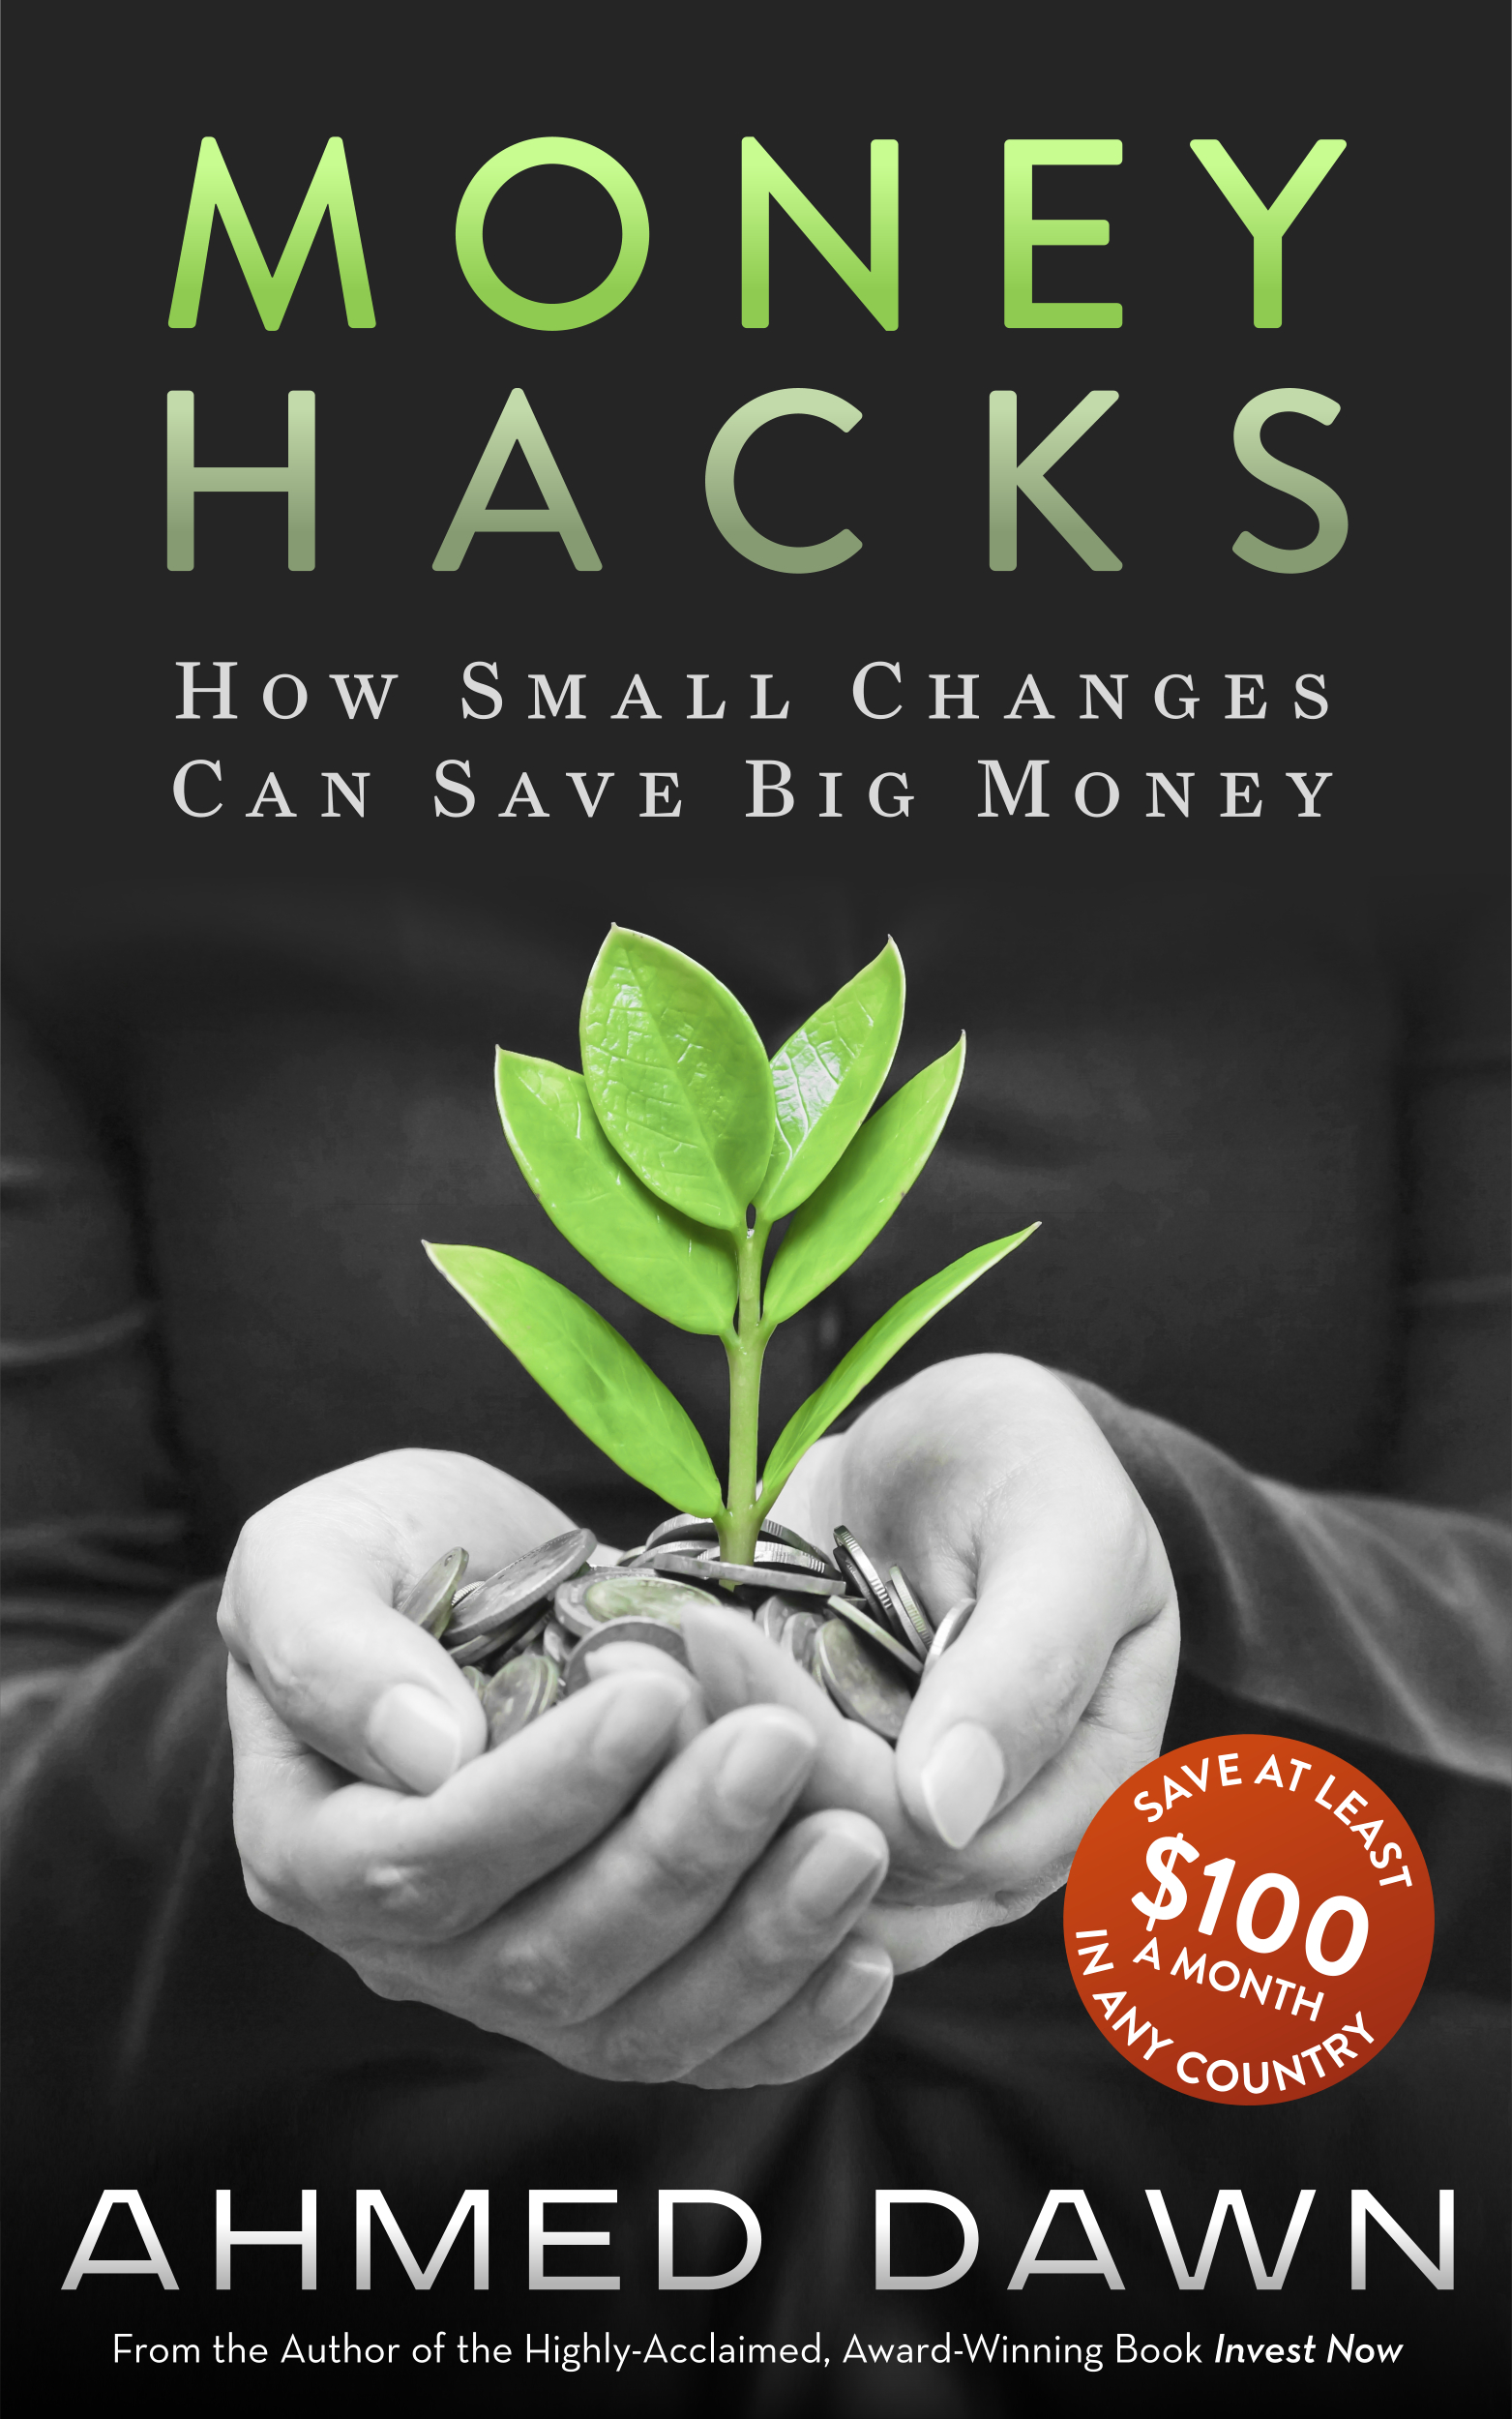 Money Hacks How Small Changes Can Save Big Money.jpg